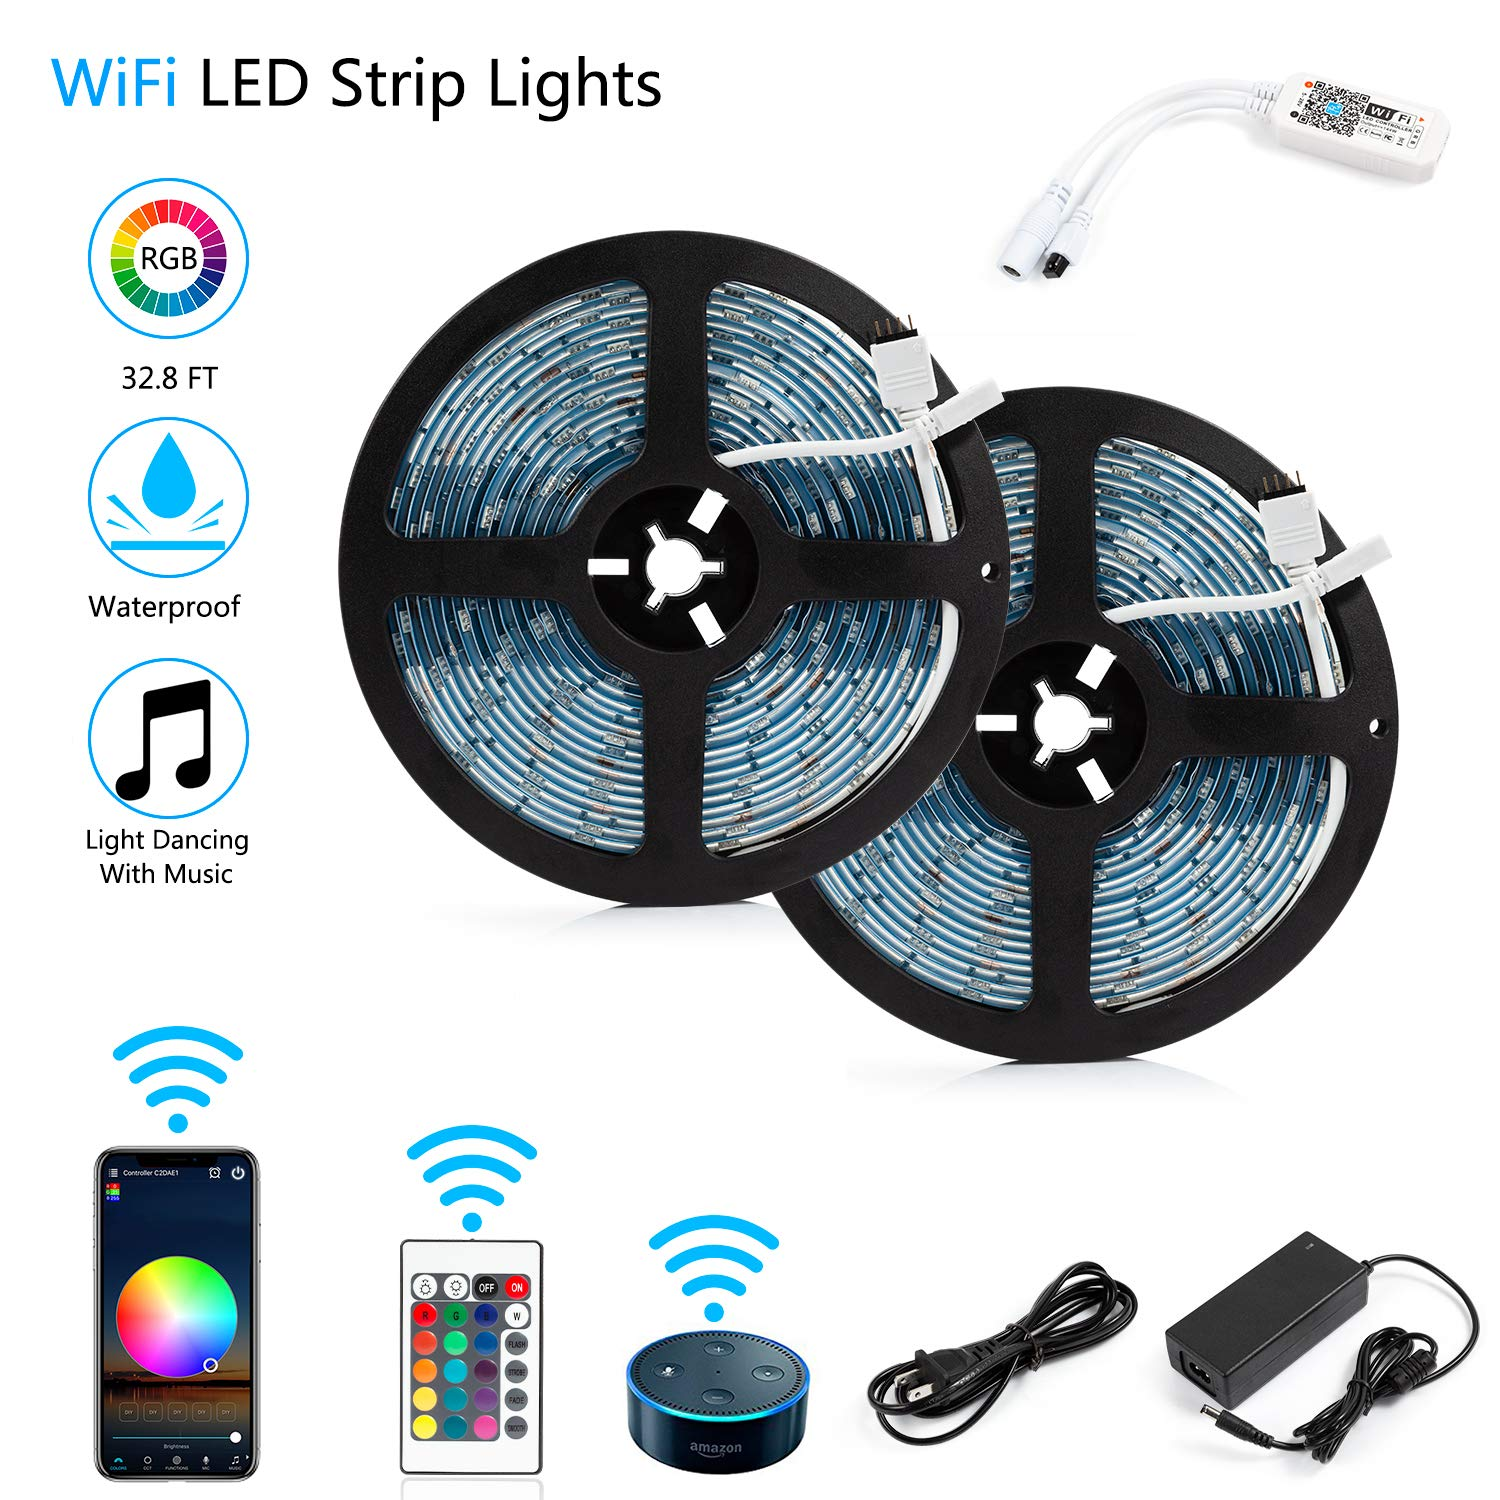 LED Strip Lights, WiFi Wireless Smartphone Controlled Waterproof RGB Rope Lights Flexible 5050 Light Strip 32.8ft 300LEDs 24key IR Remote Controller DC12V UL Power Adapter Work with Android iOS Alexa